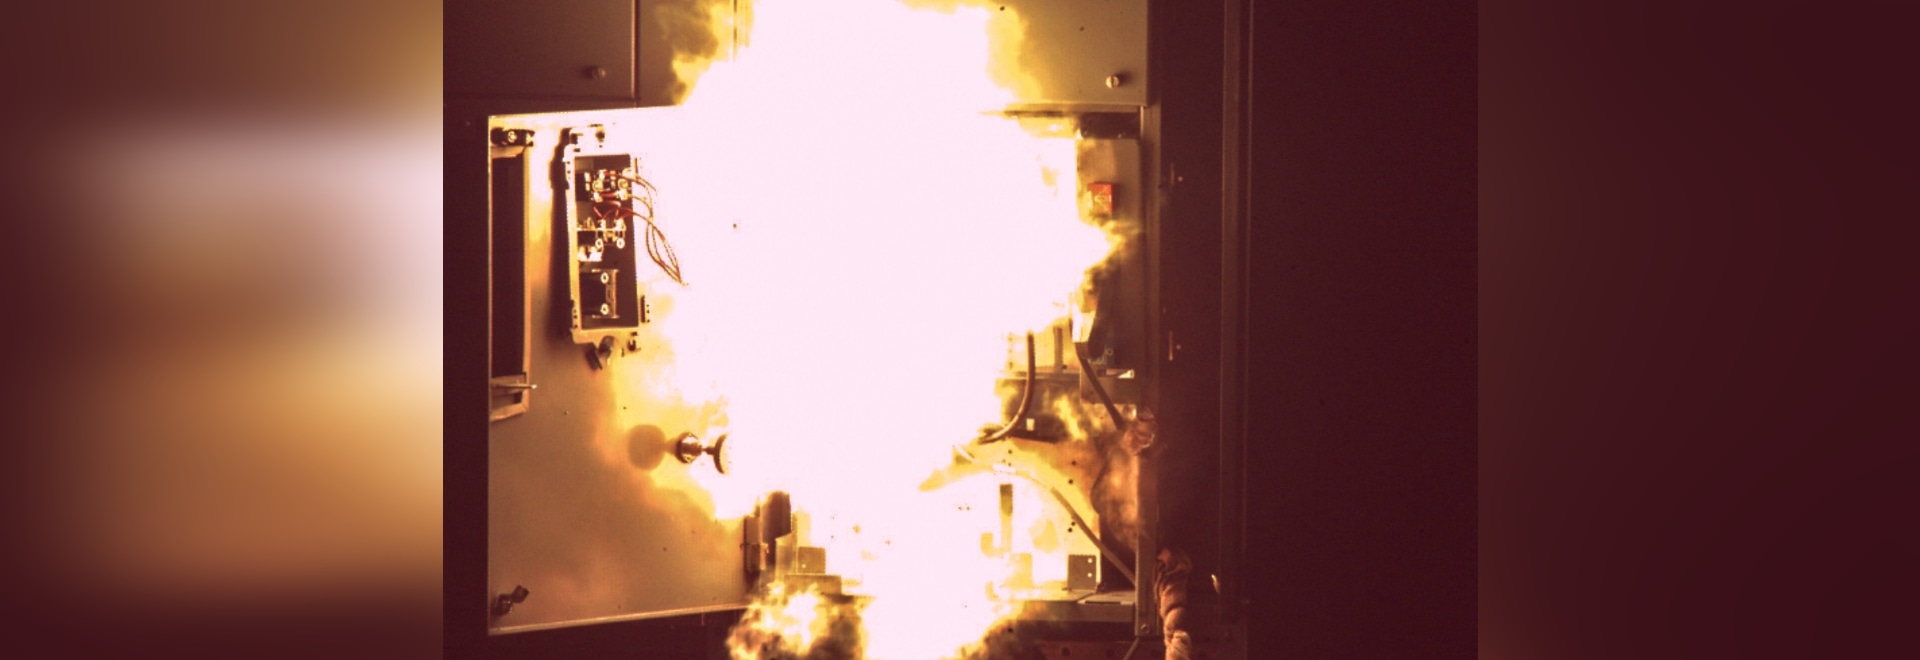 The Dangers and Causes of Arc Flash What is it